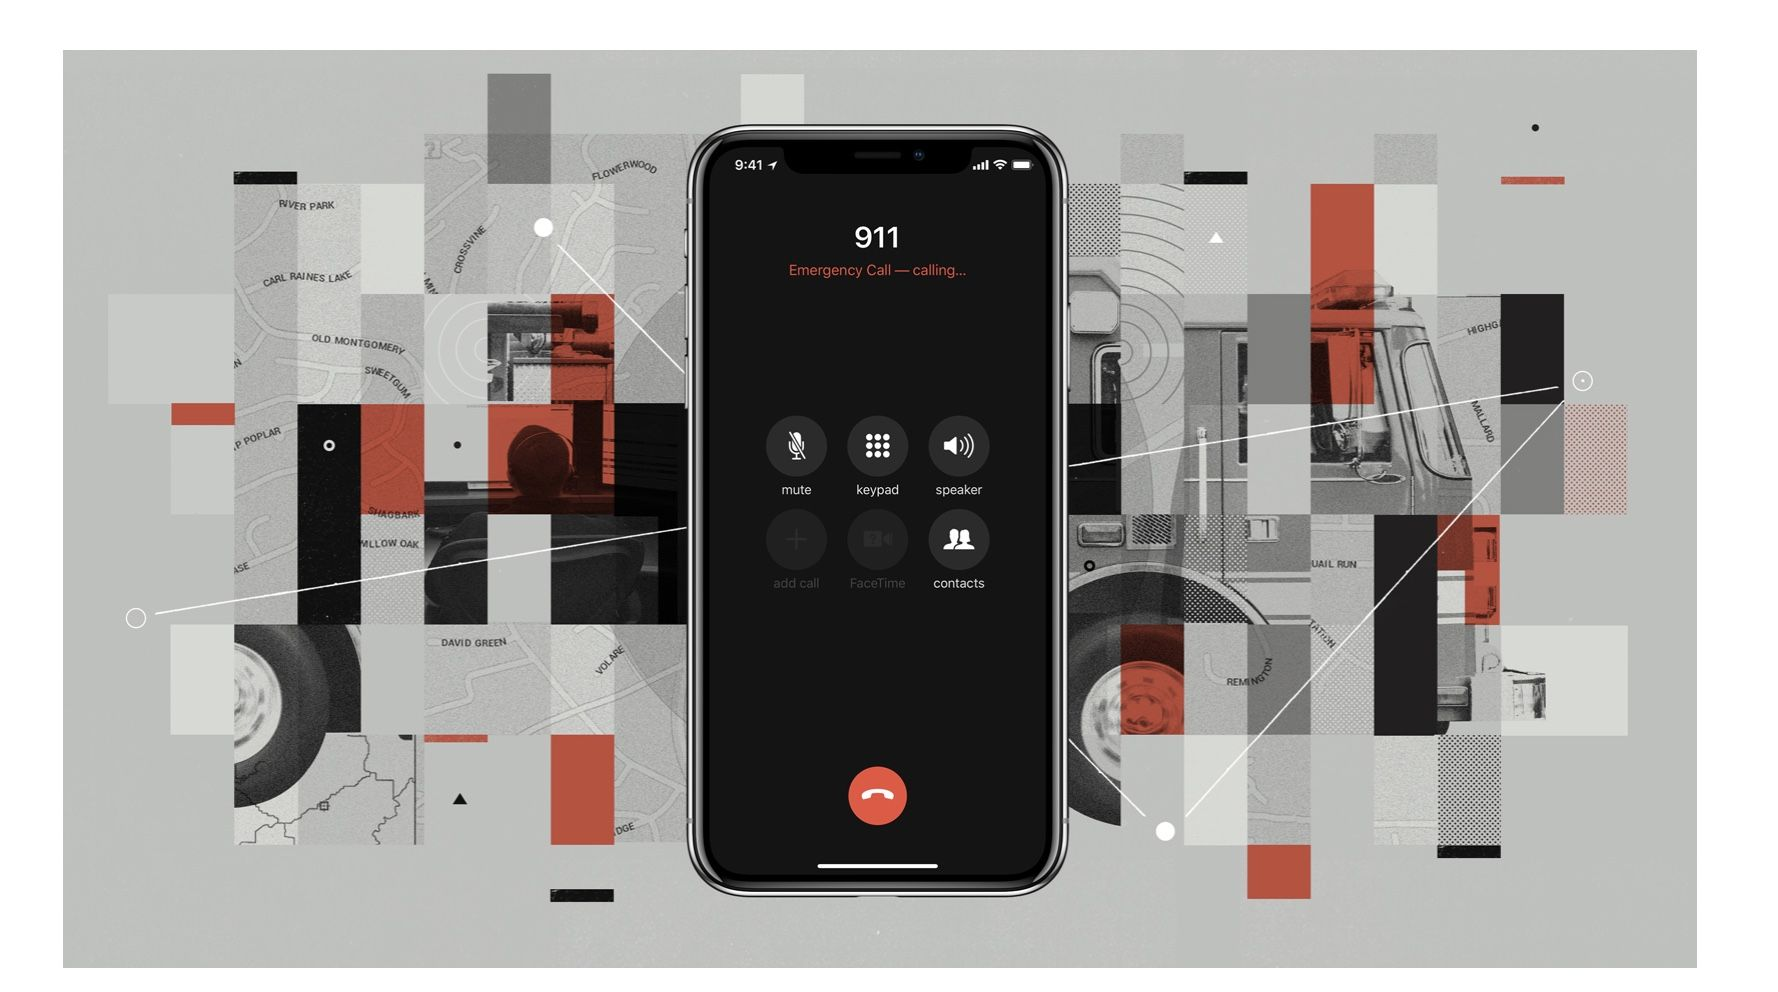 iOS 12 will send your location data to 911 in an emergency.jpeg